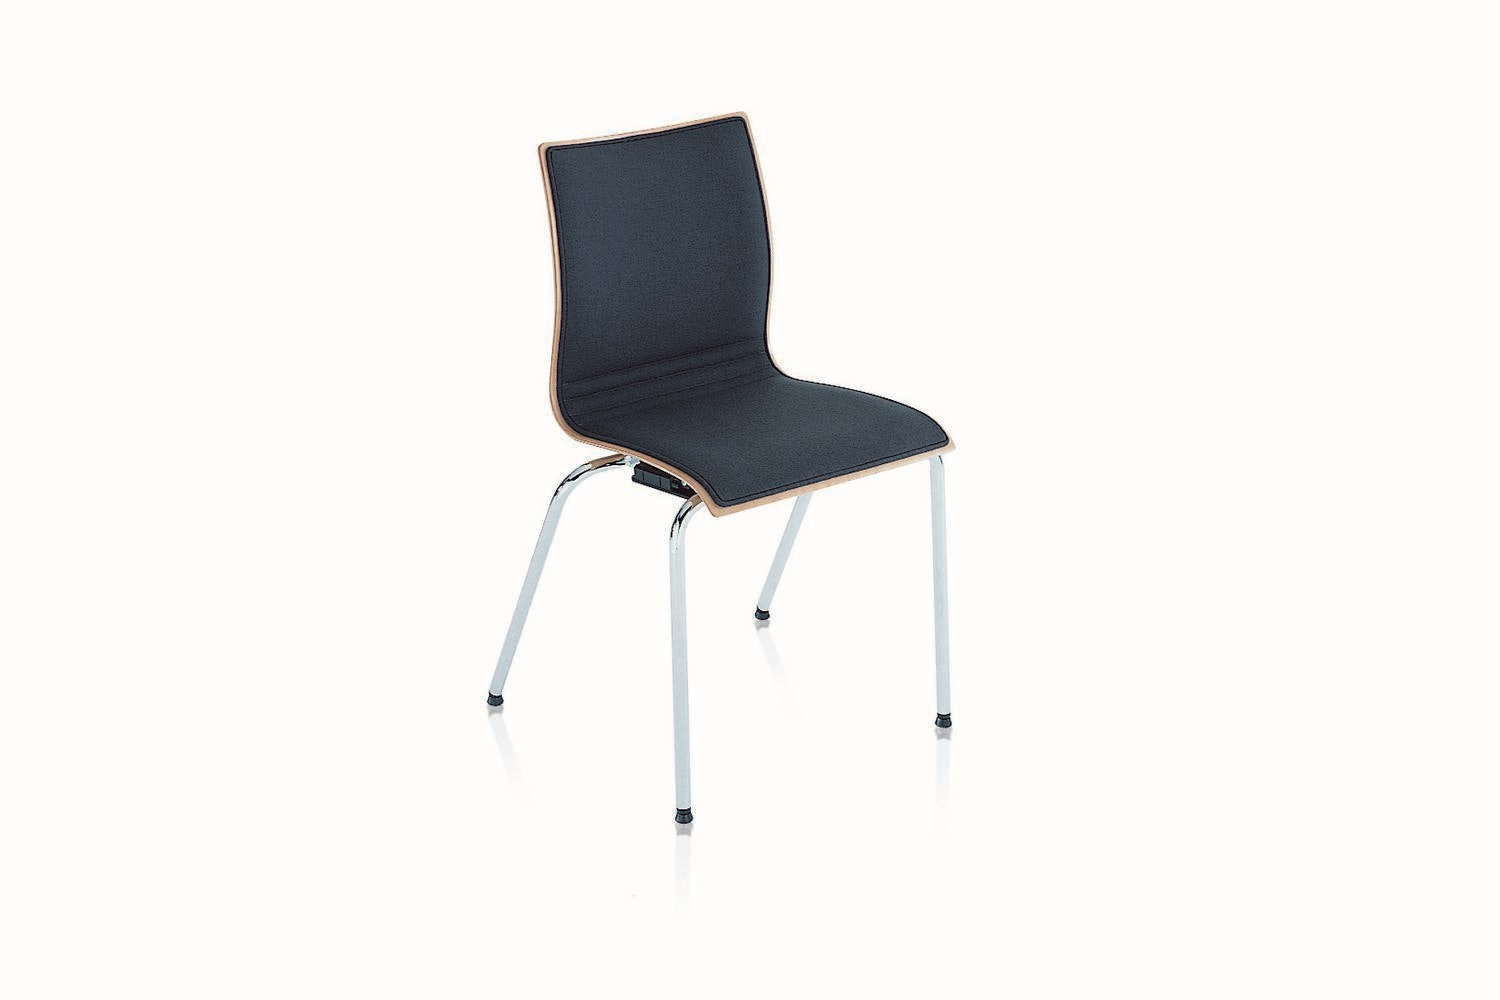 Hot Chair by Gebruder Thonet Vienna for Wiener GTV Design